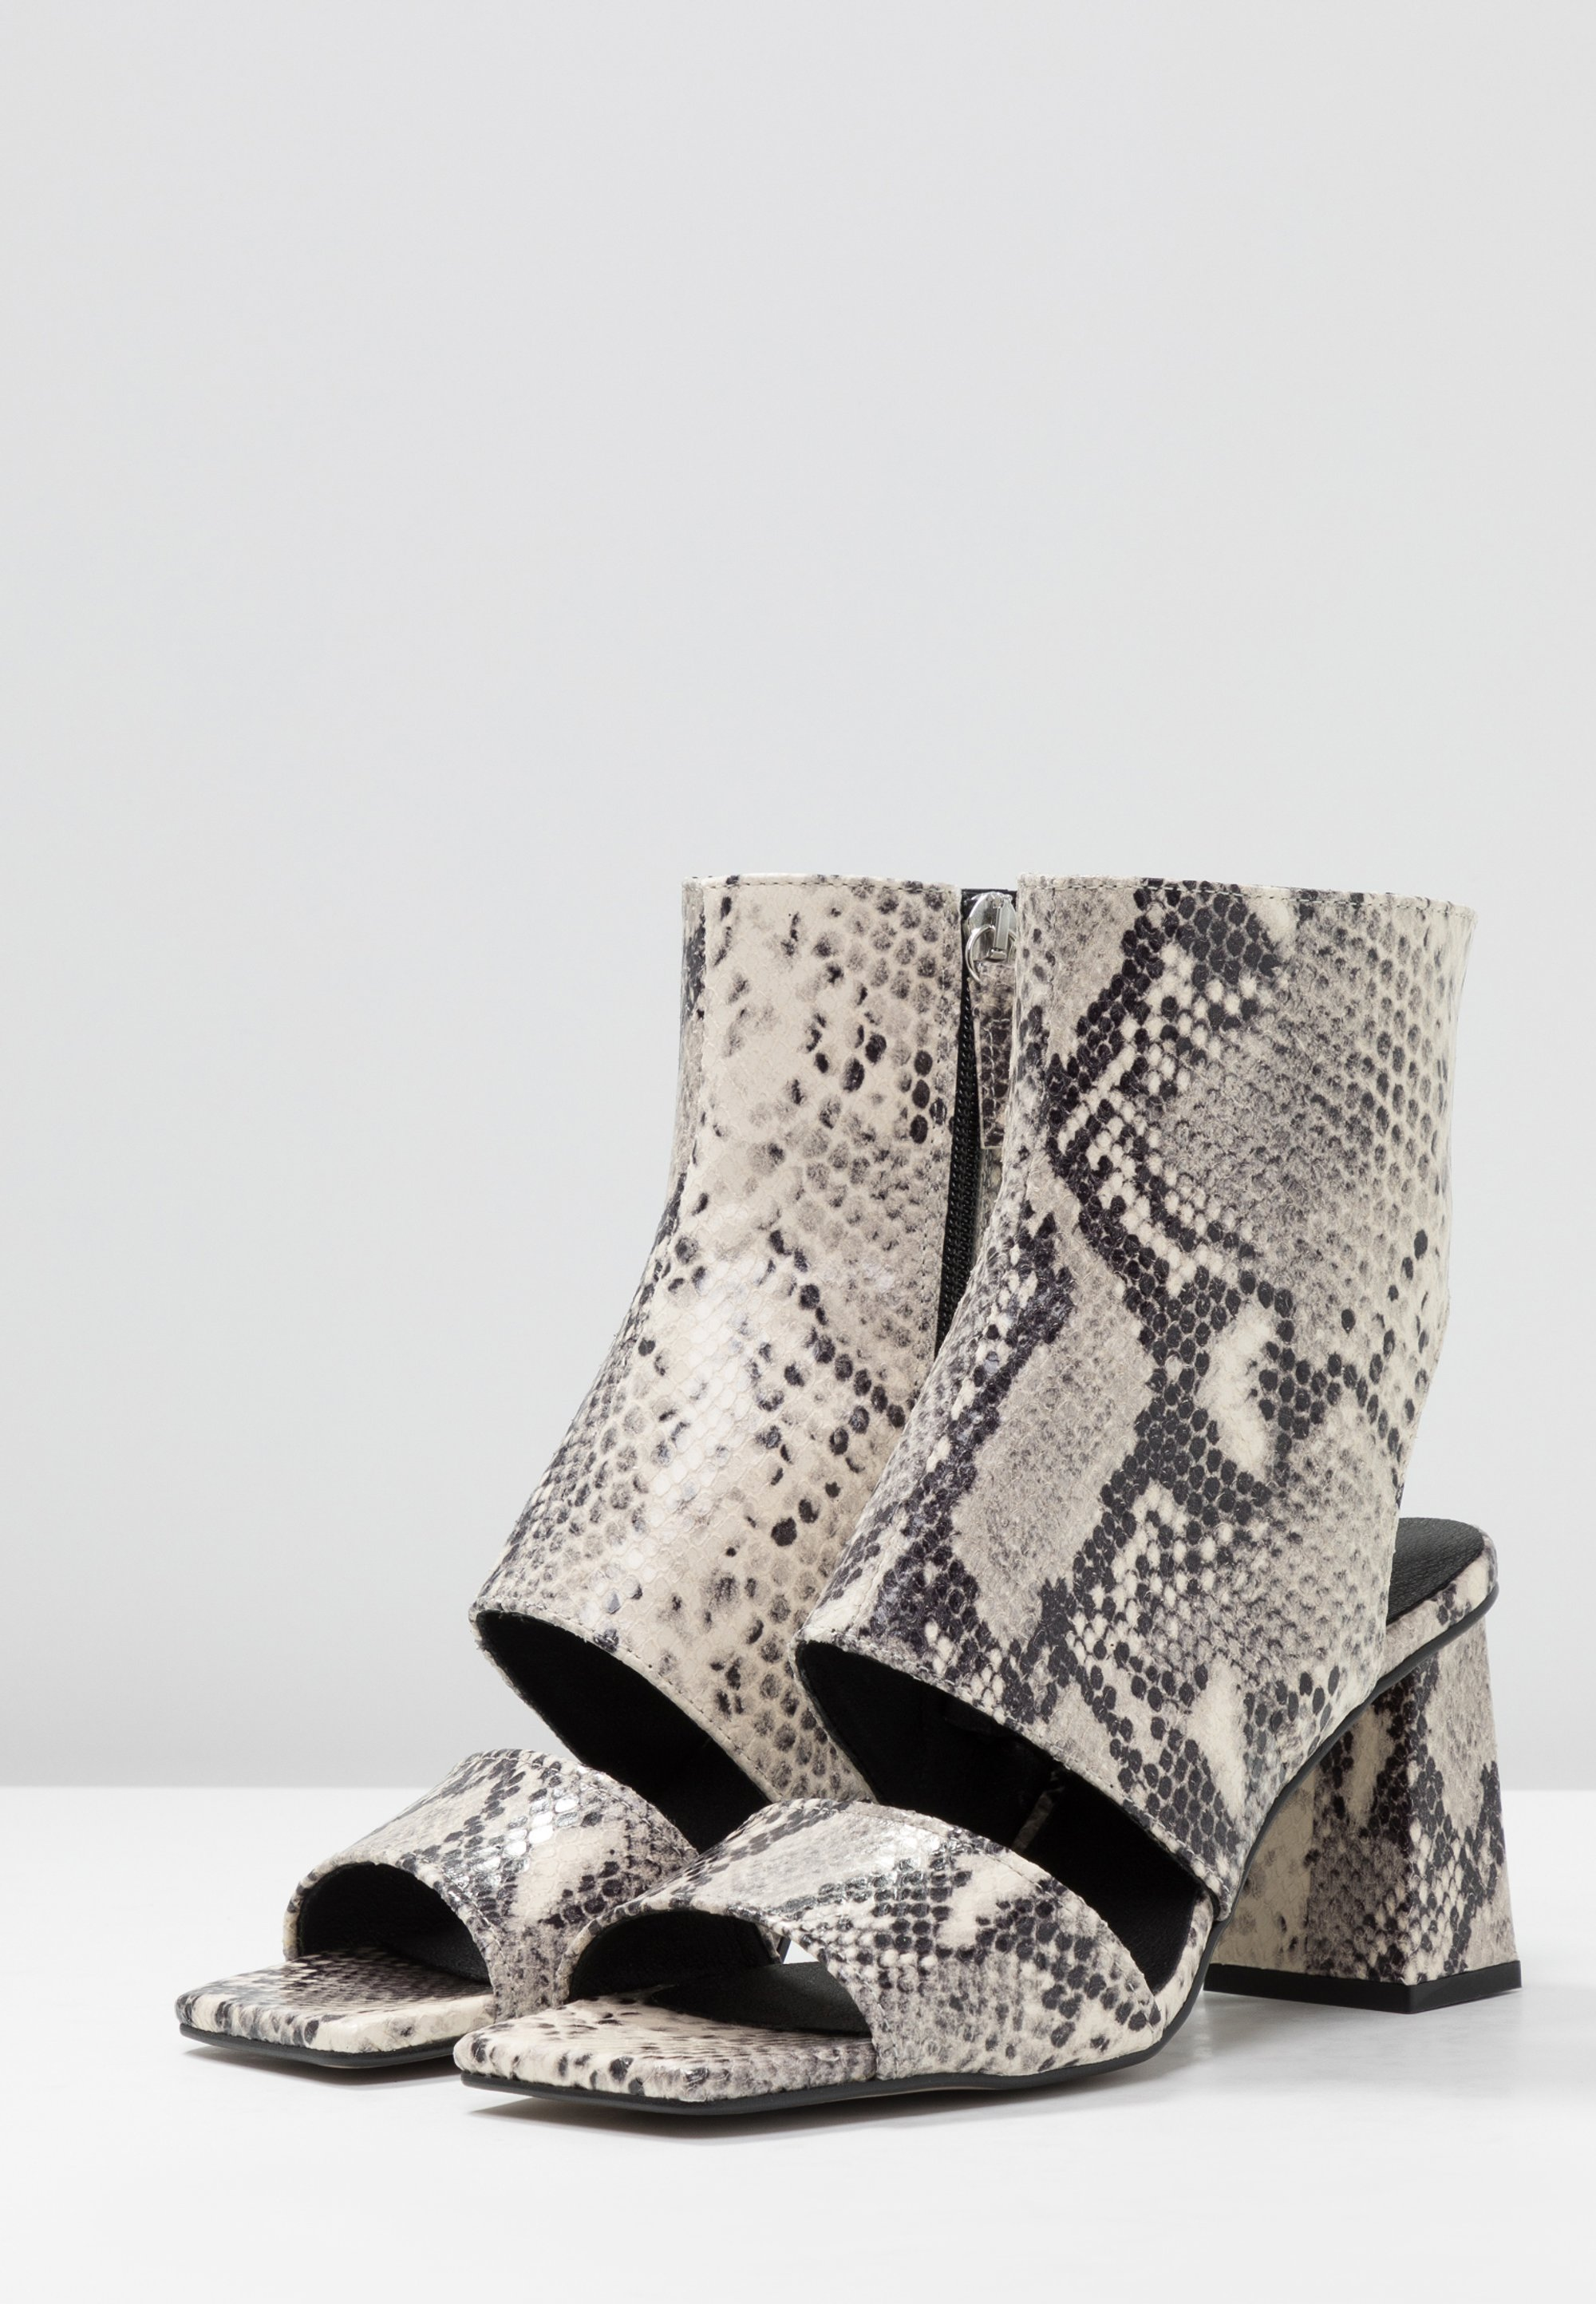 NICK - High heeled sandals by Topshop